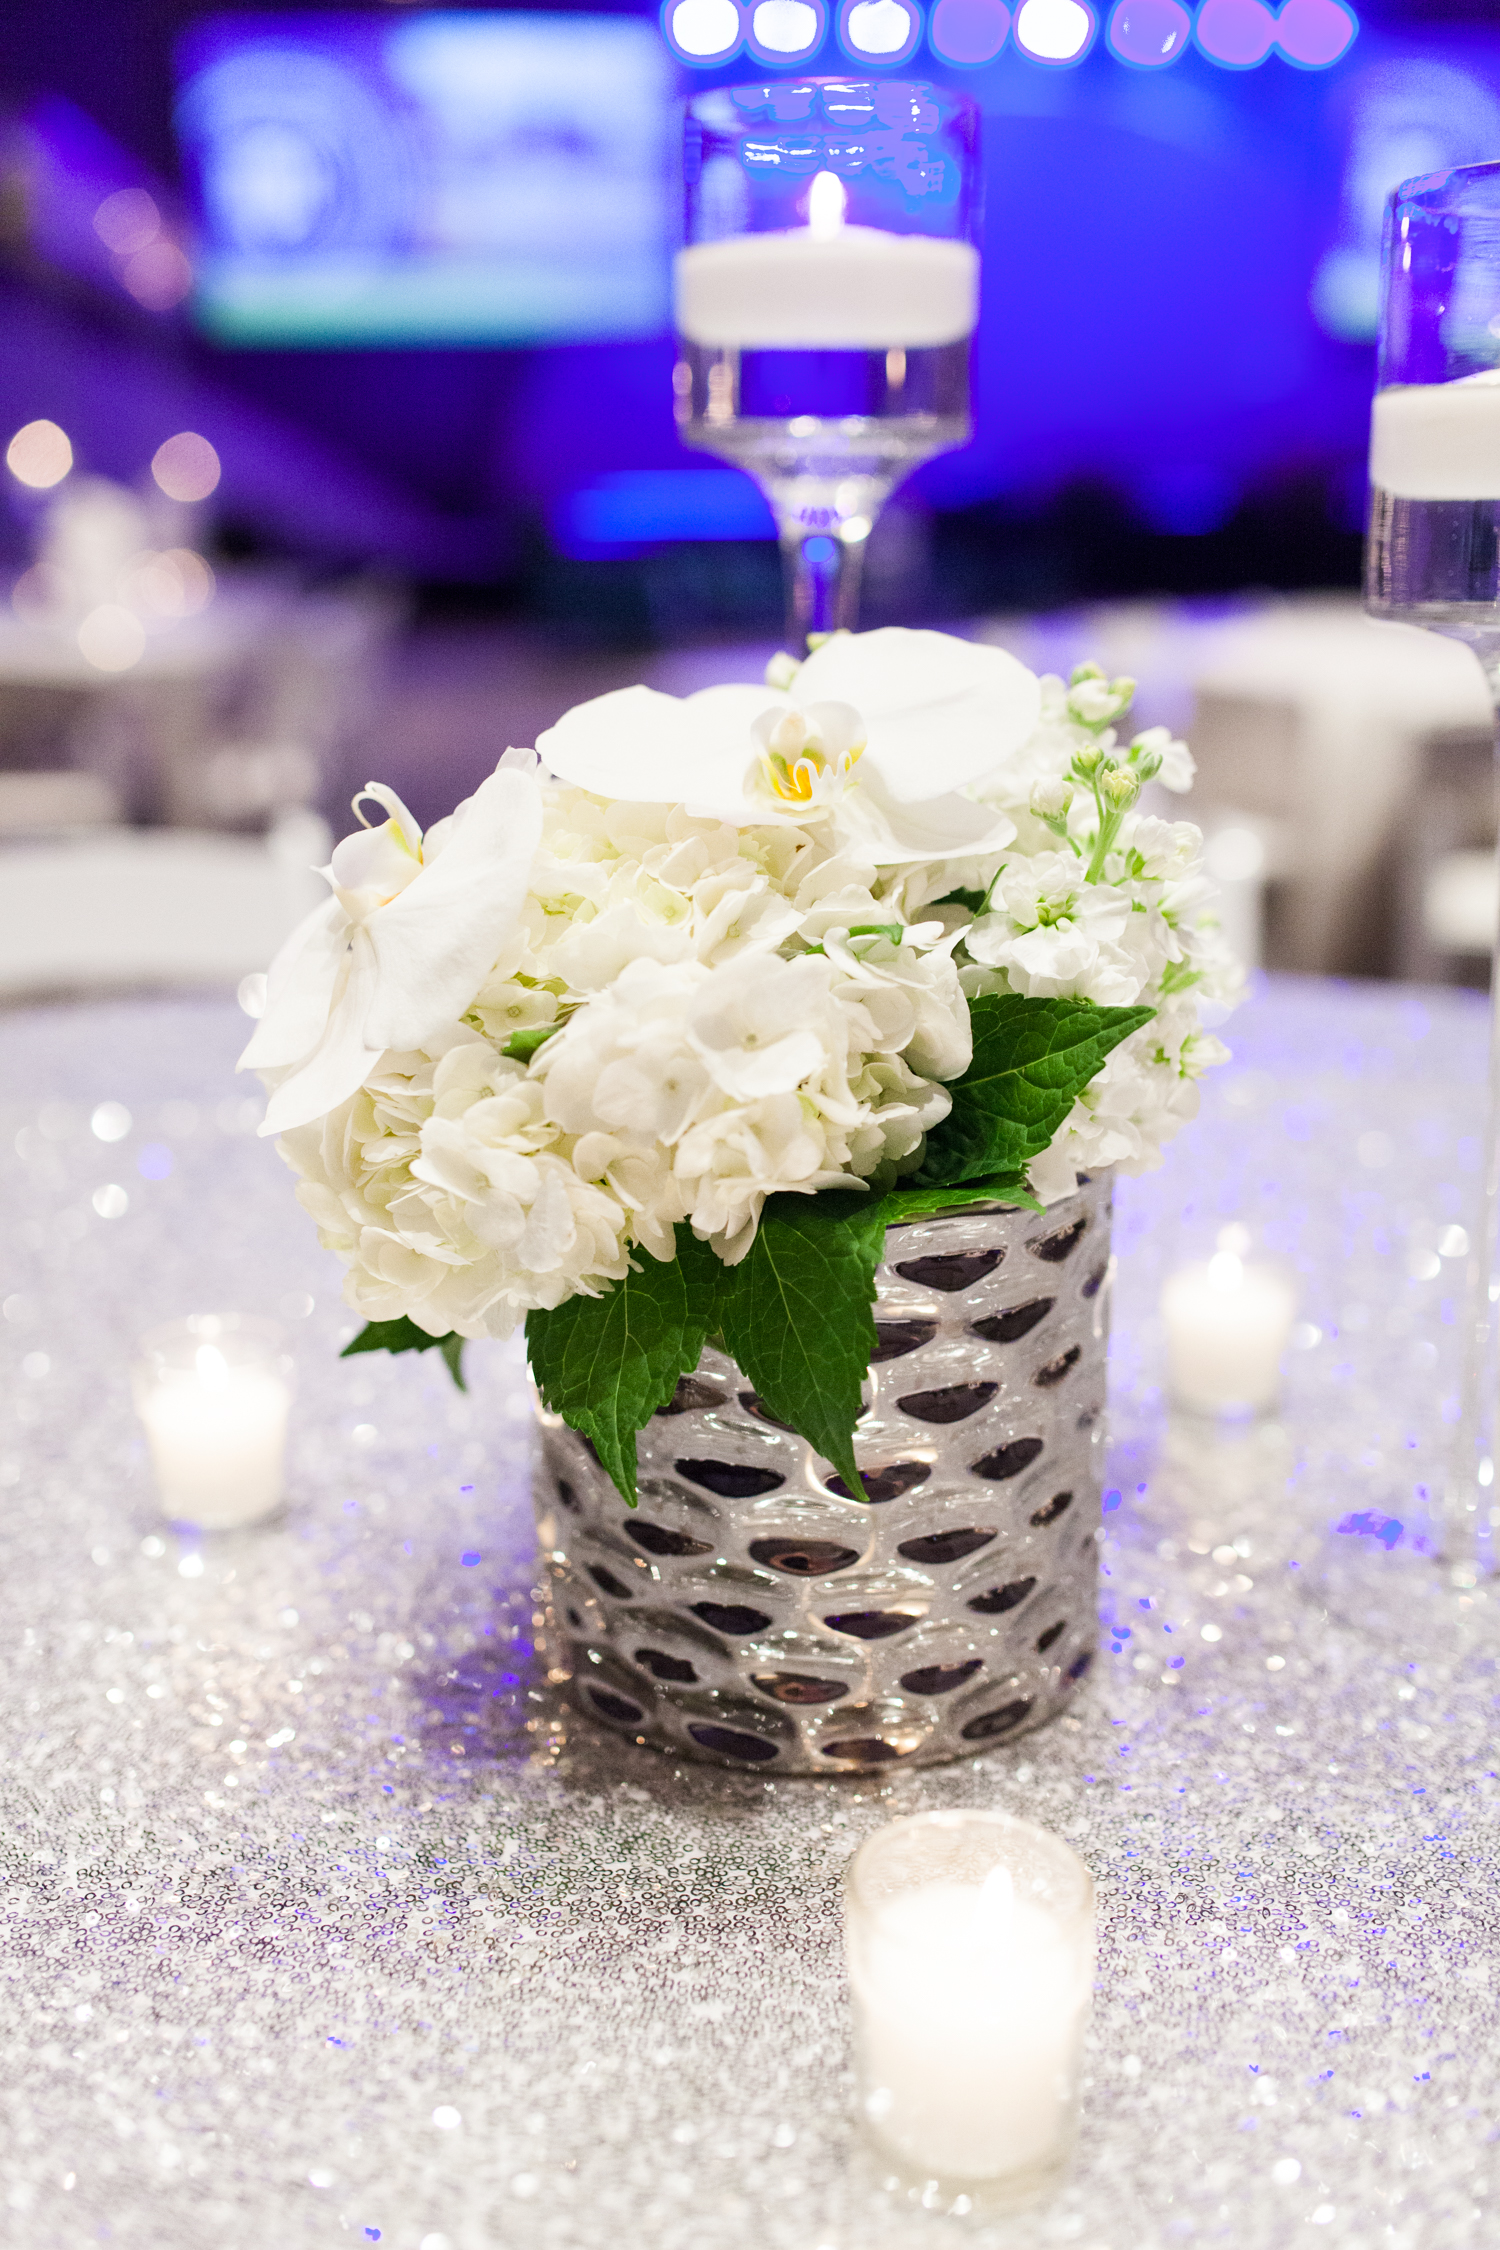 Amway Event in Grand Rapids with Silver and White Floral Arrangements